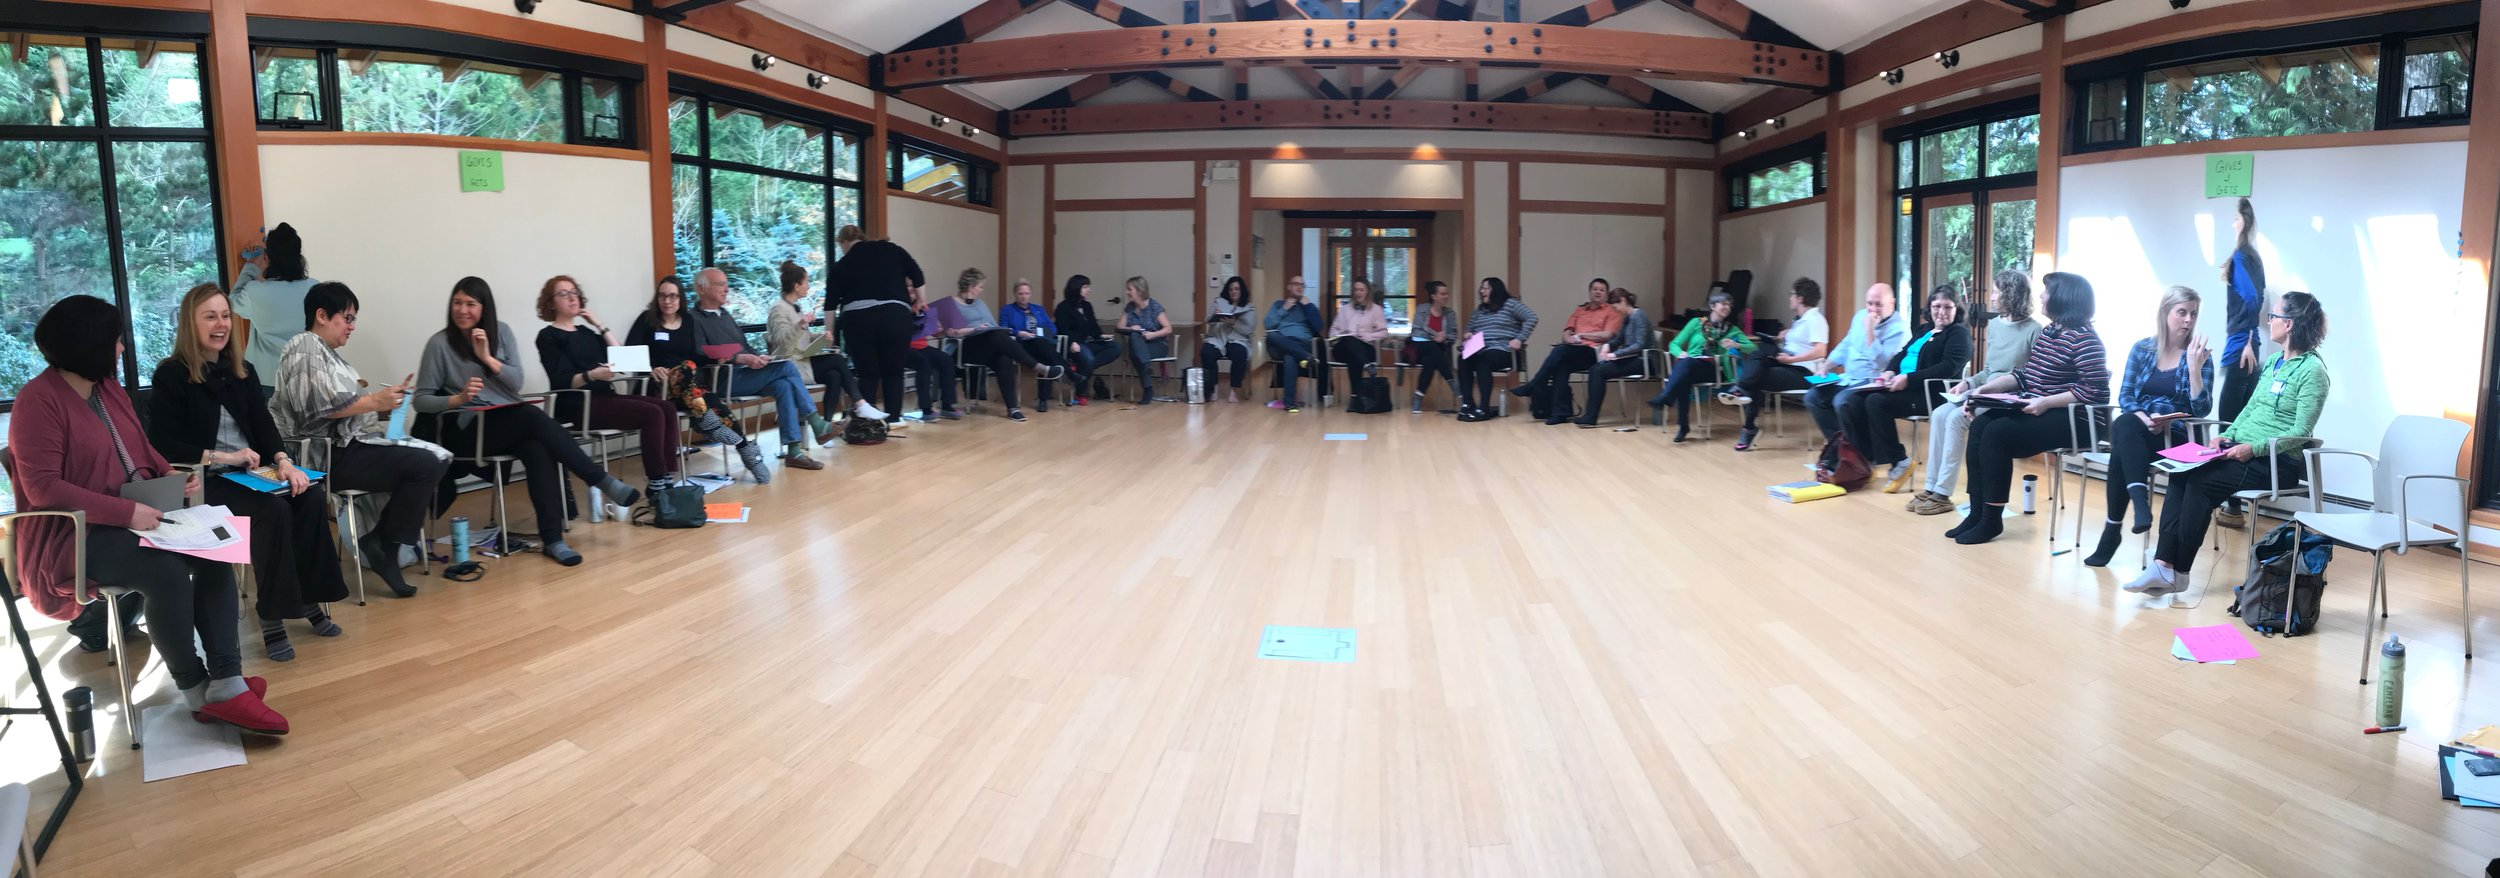 Gathering together for the opening circle to kick off the Nourish retreat.